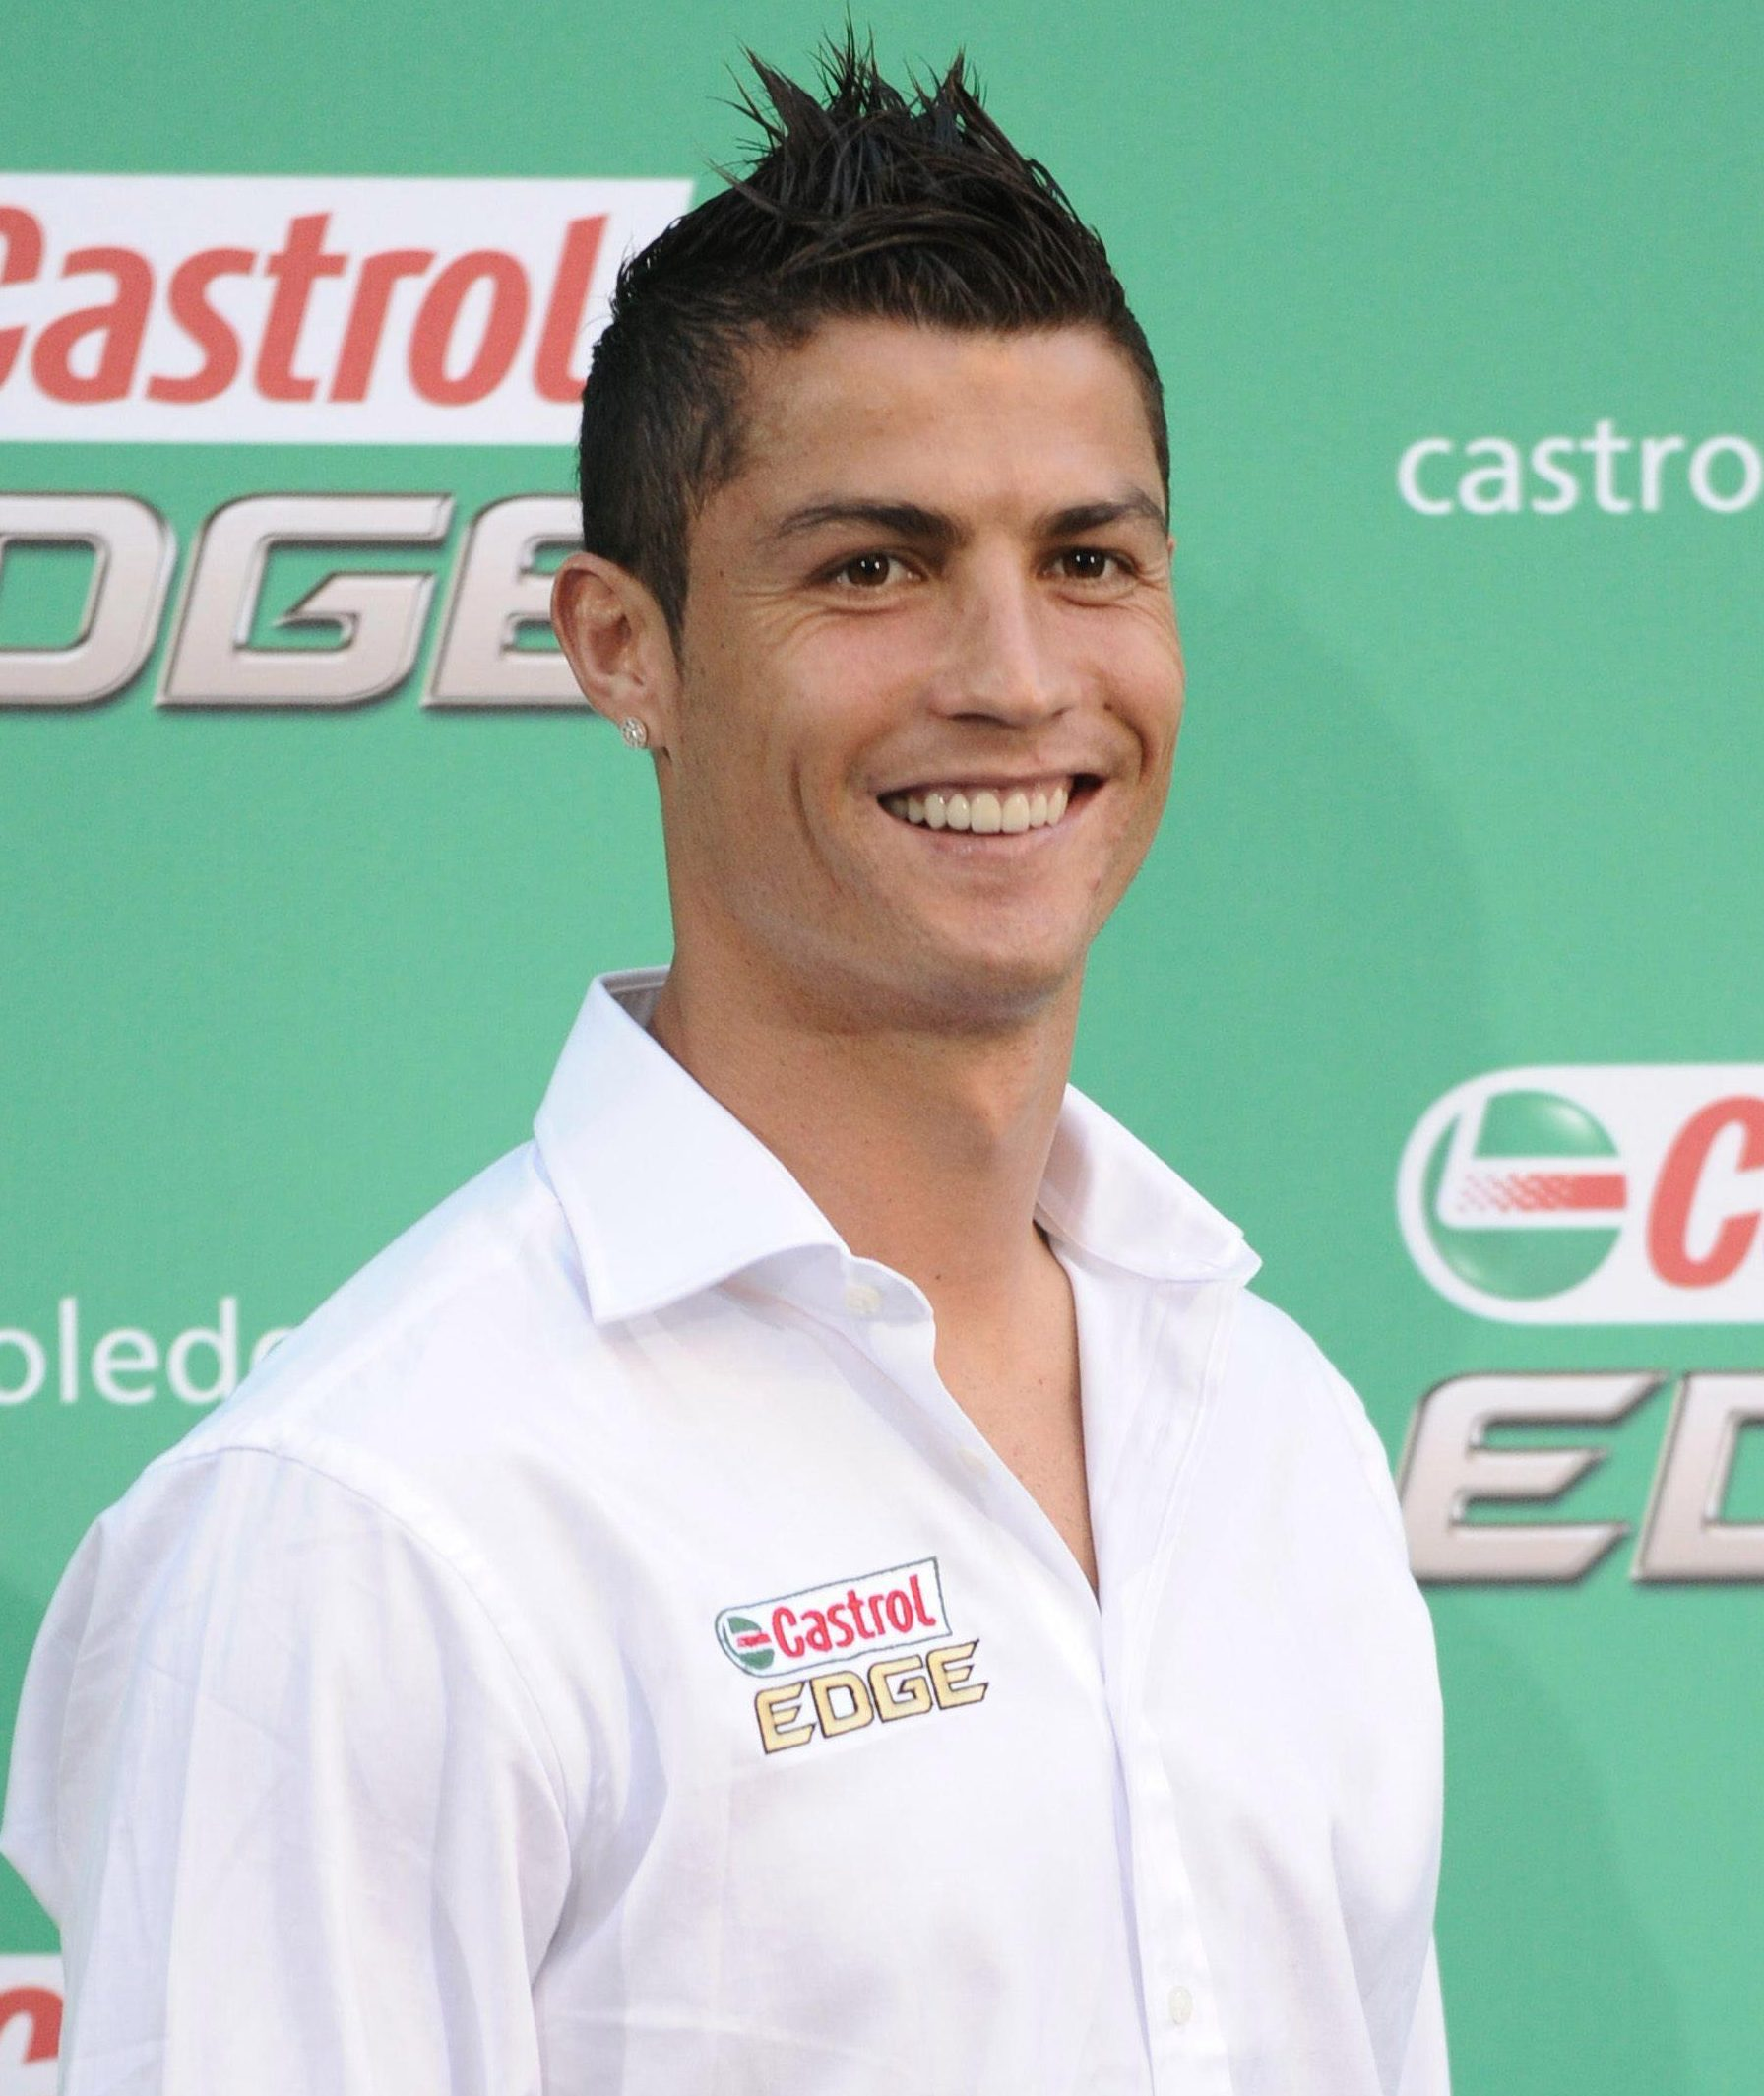 A cool £3.4million is coming Ronaldo's way from Castrol